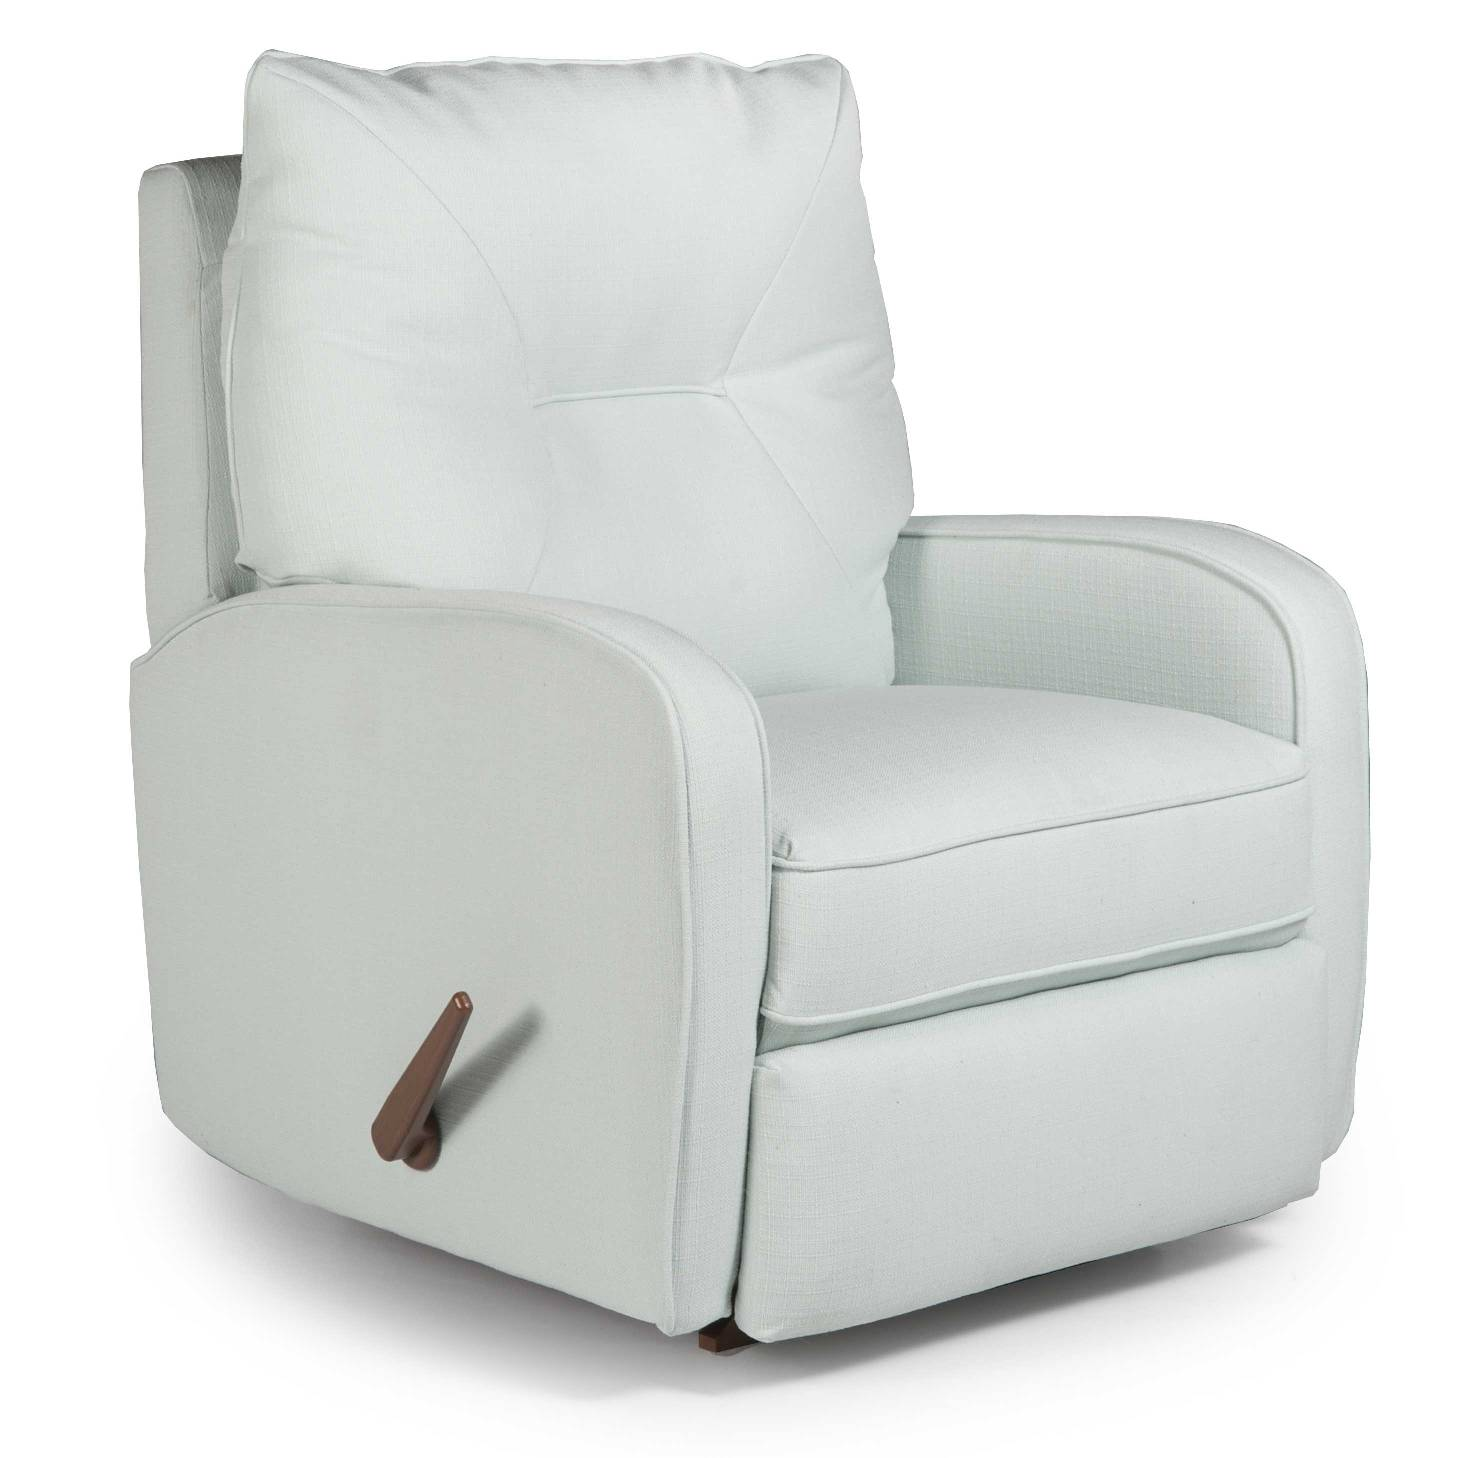 Image of: Rocking Recliner Chair Design